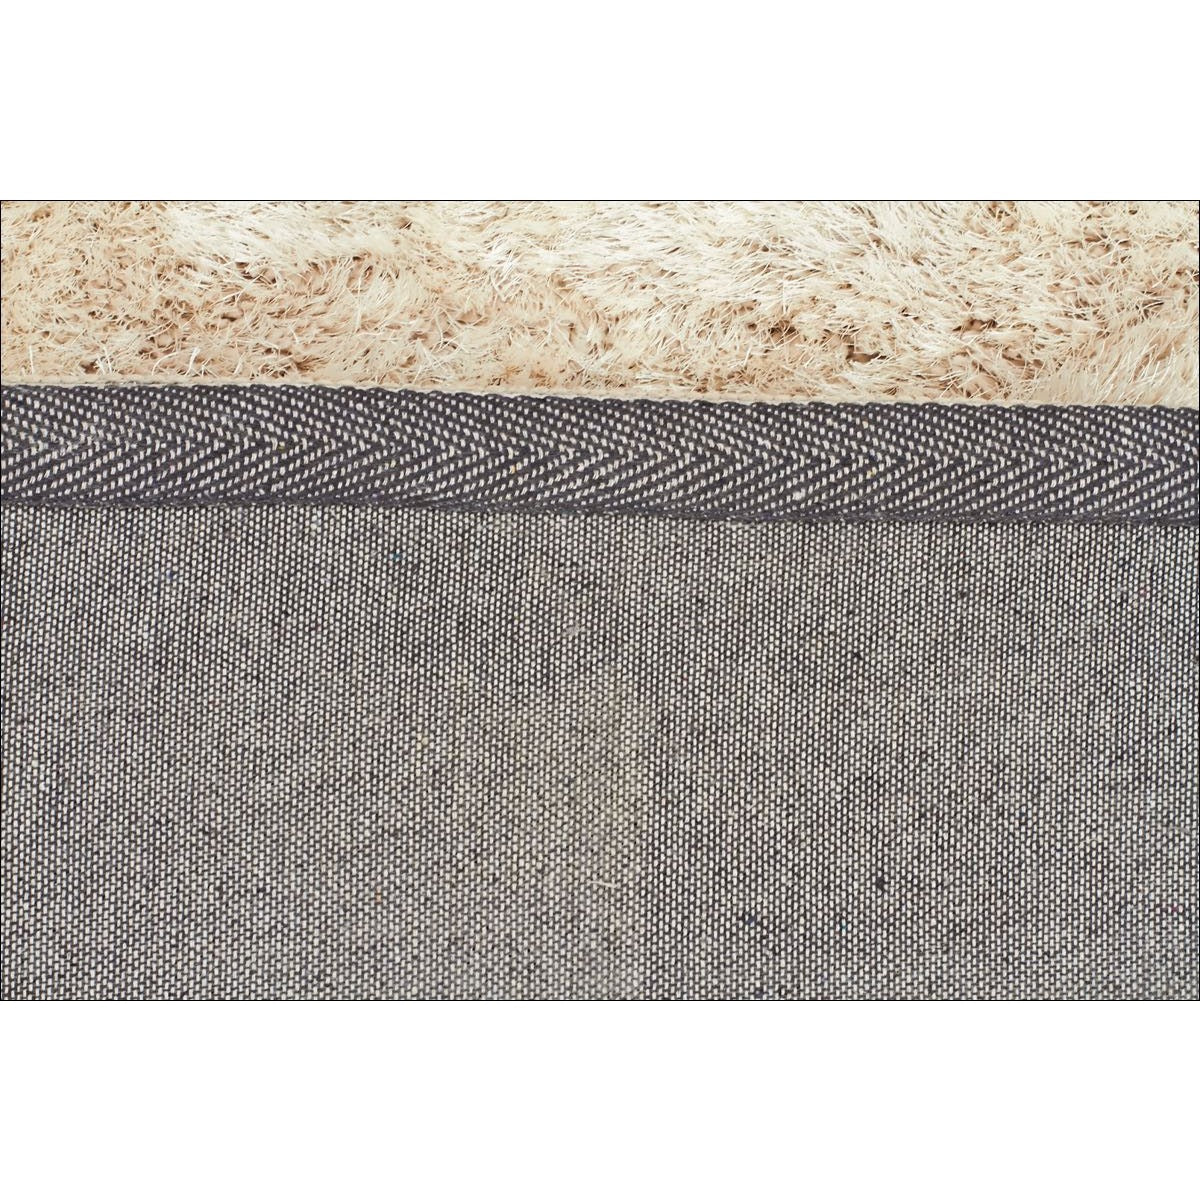 twilight shag rug  natural modern shaggy rug – rugs of beauty -  twilight shag rug  natural modern shaggy rug  rugs of beauty